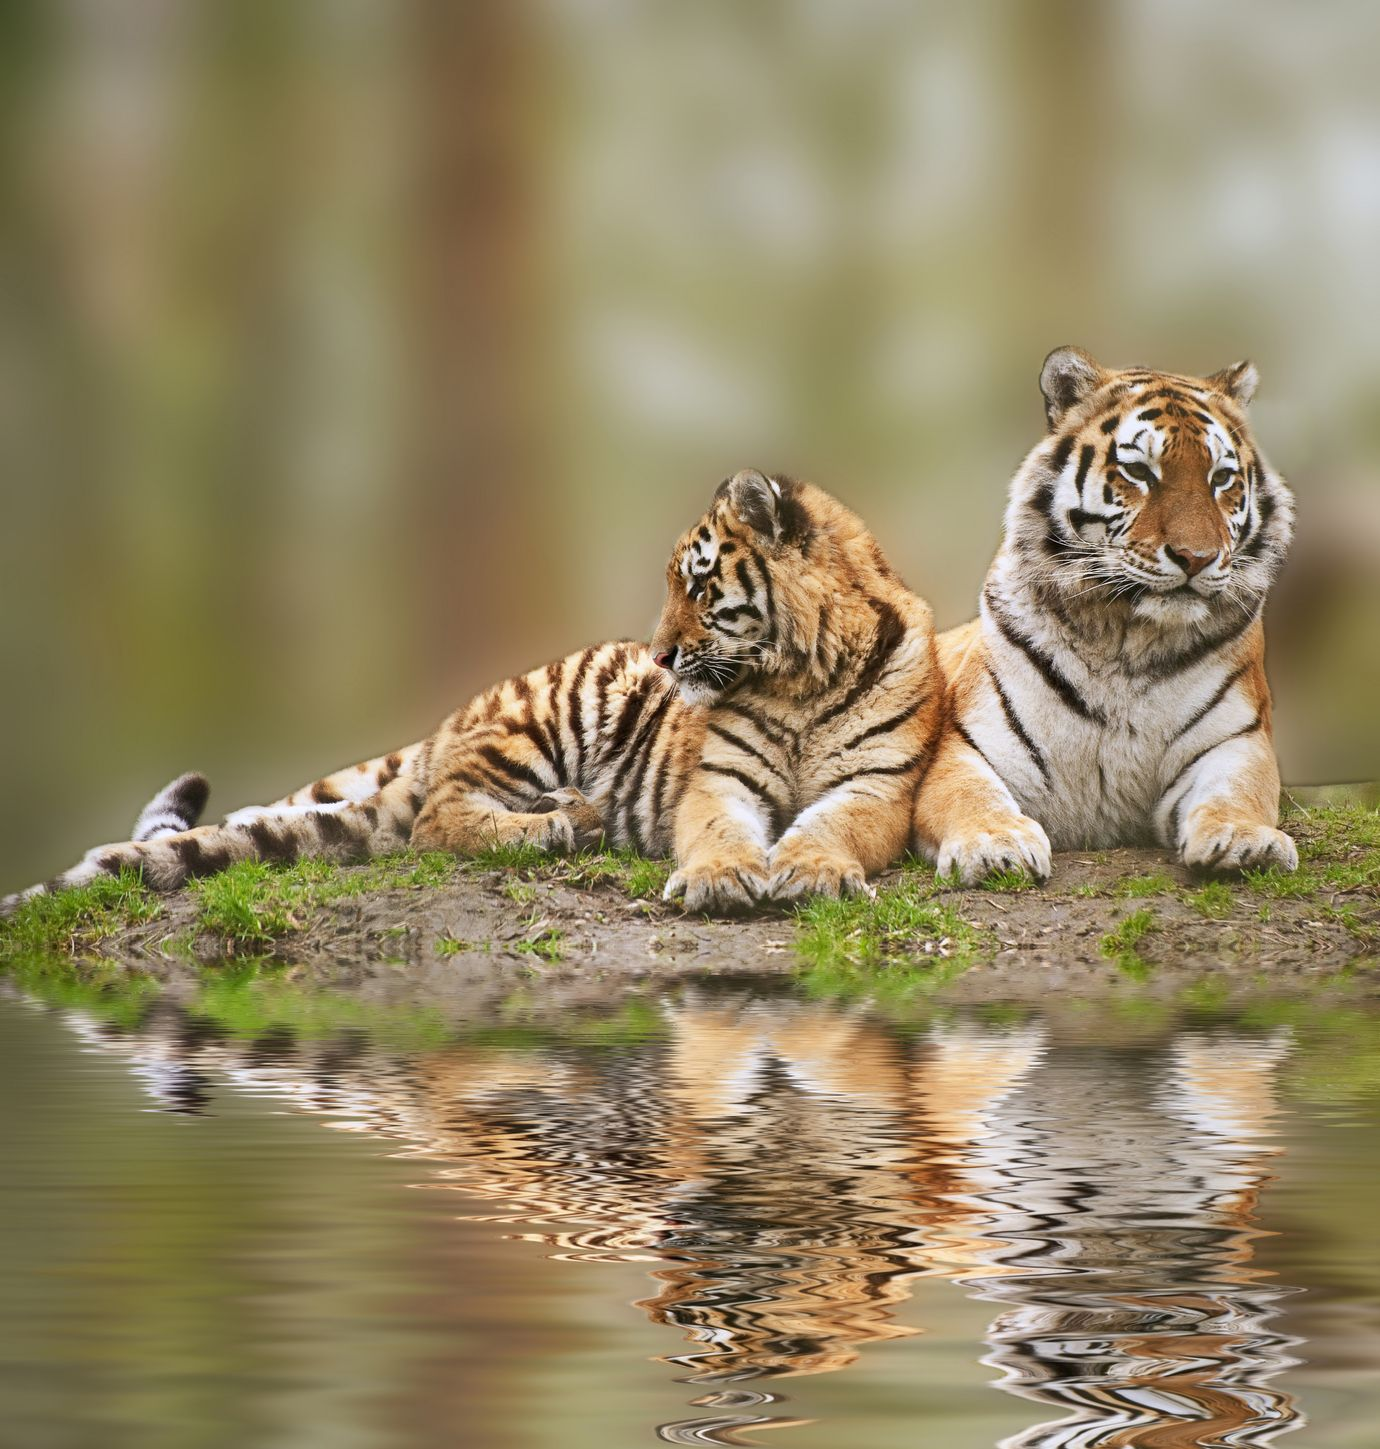 Tigres Pareja De Tigres Espejo Tigres Animals Big Cats Exotic Birds